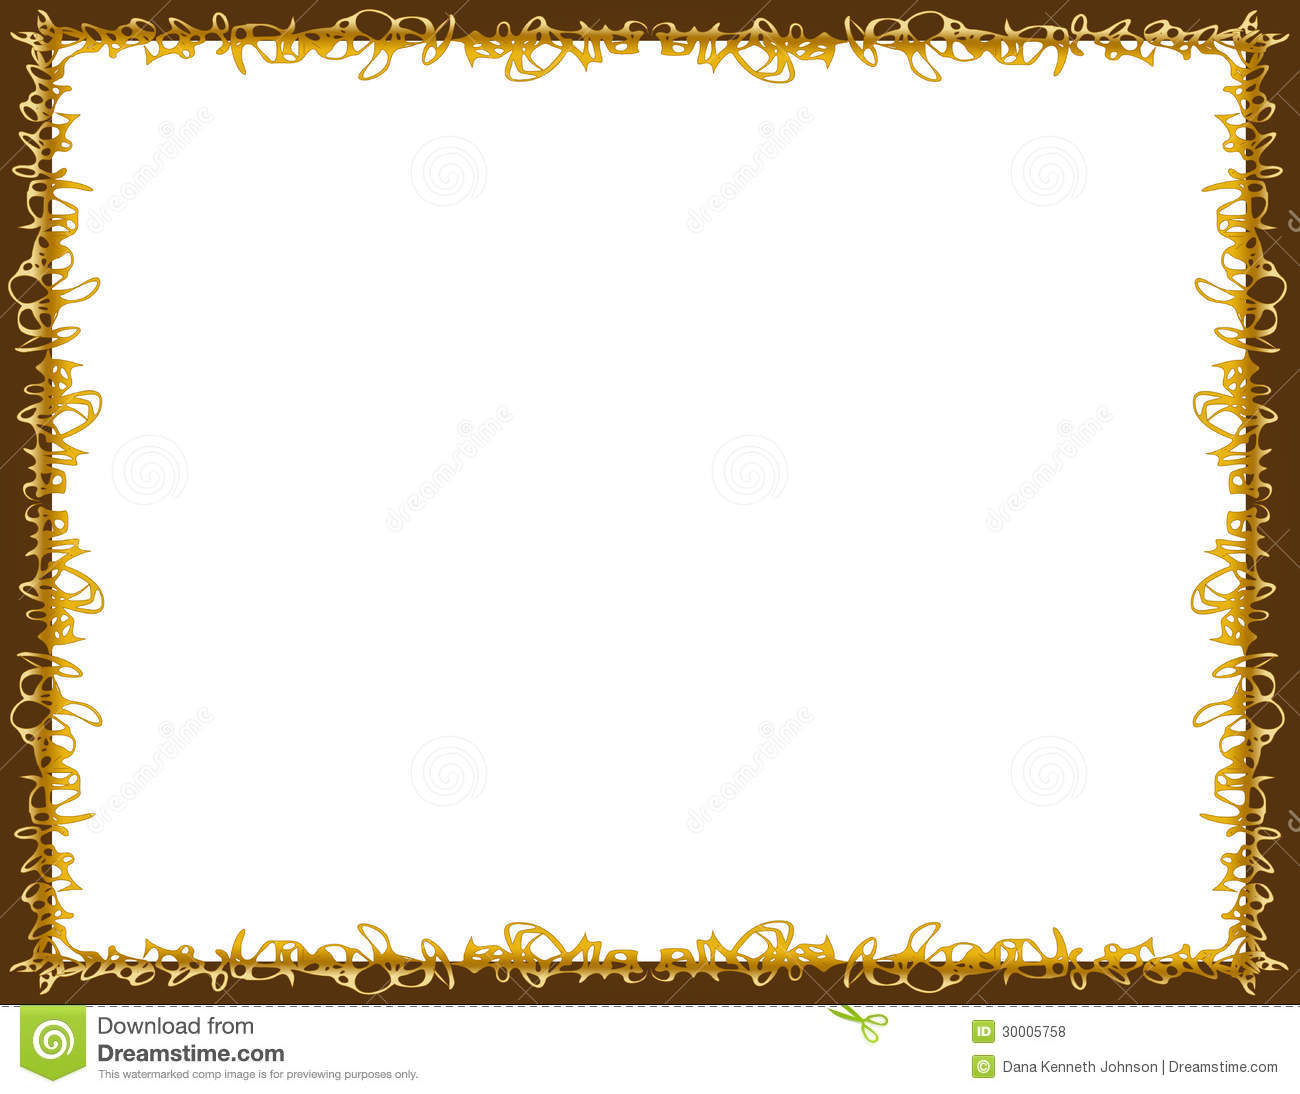 Frame clipart chocolate Free Clipart China Chocolate Image